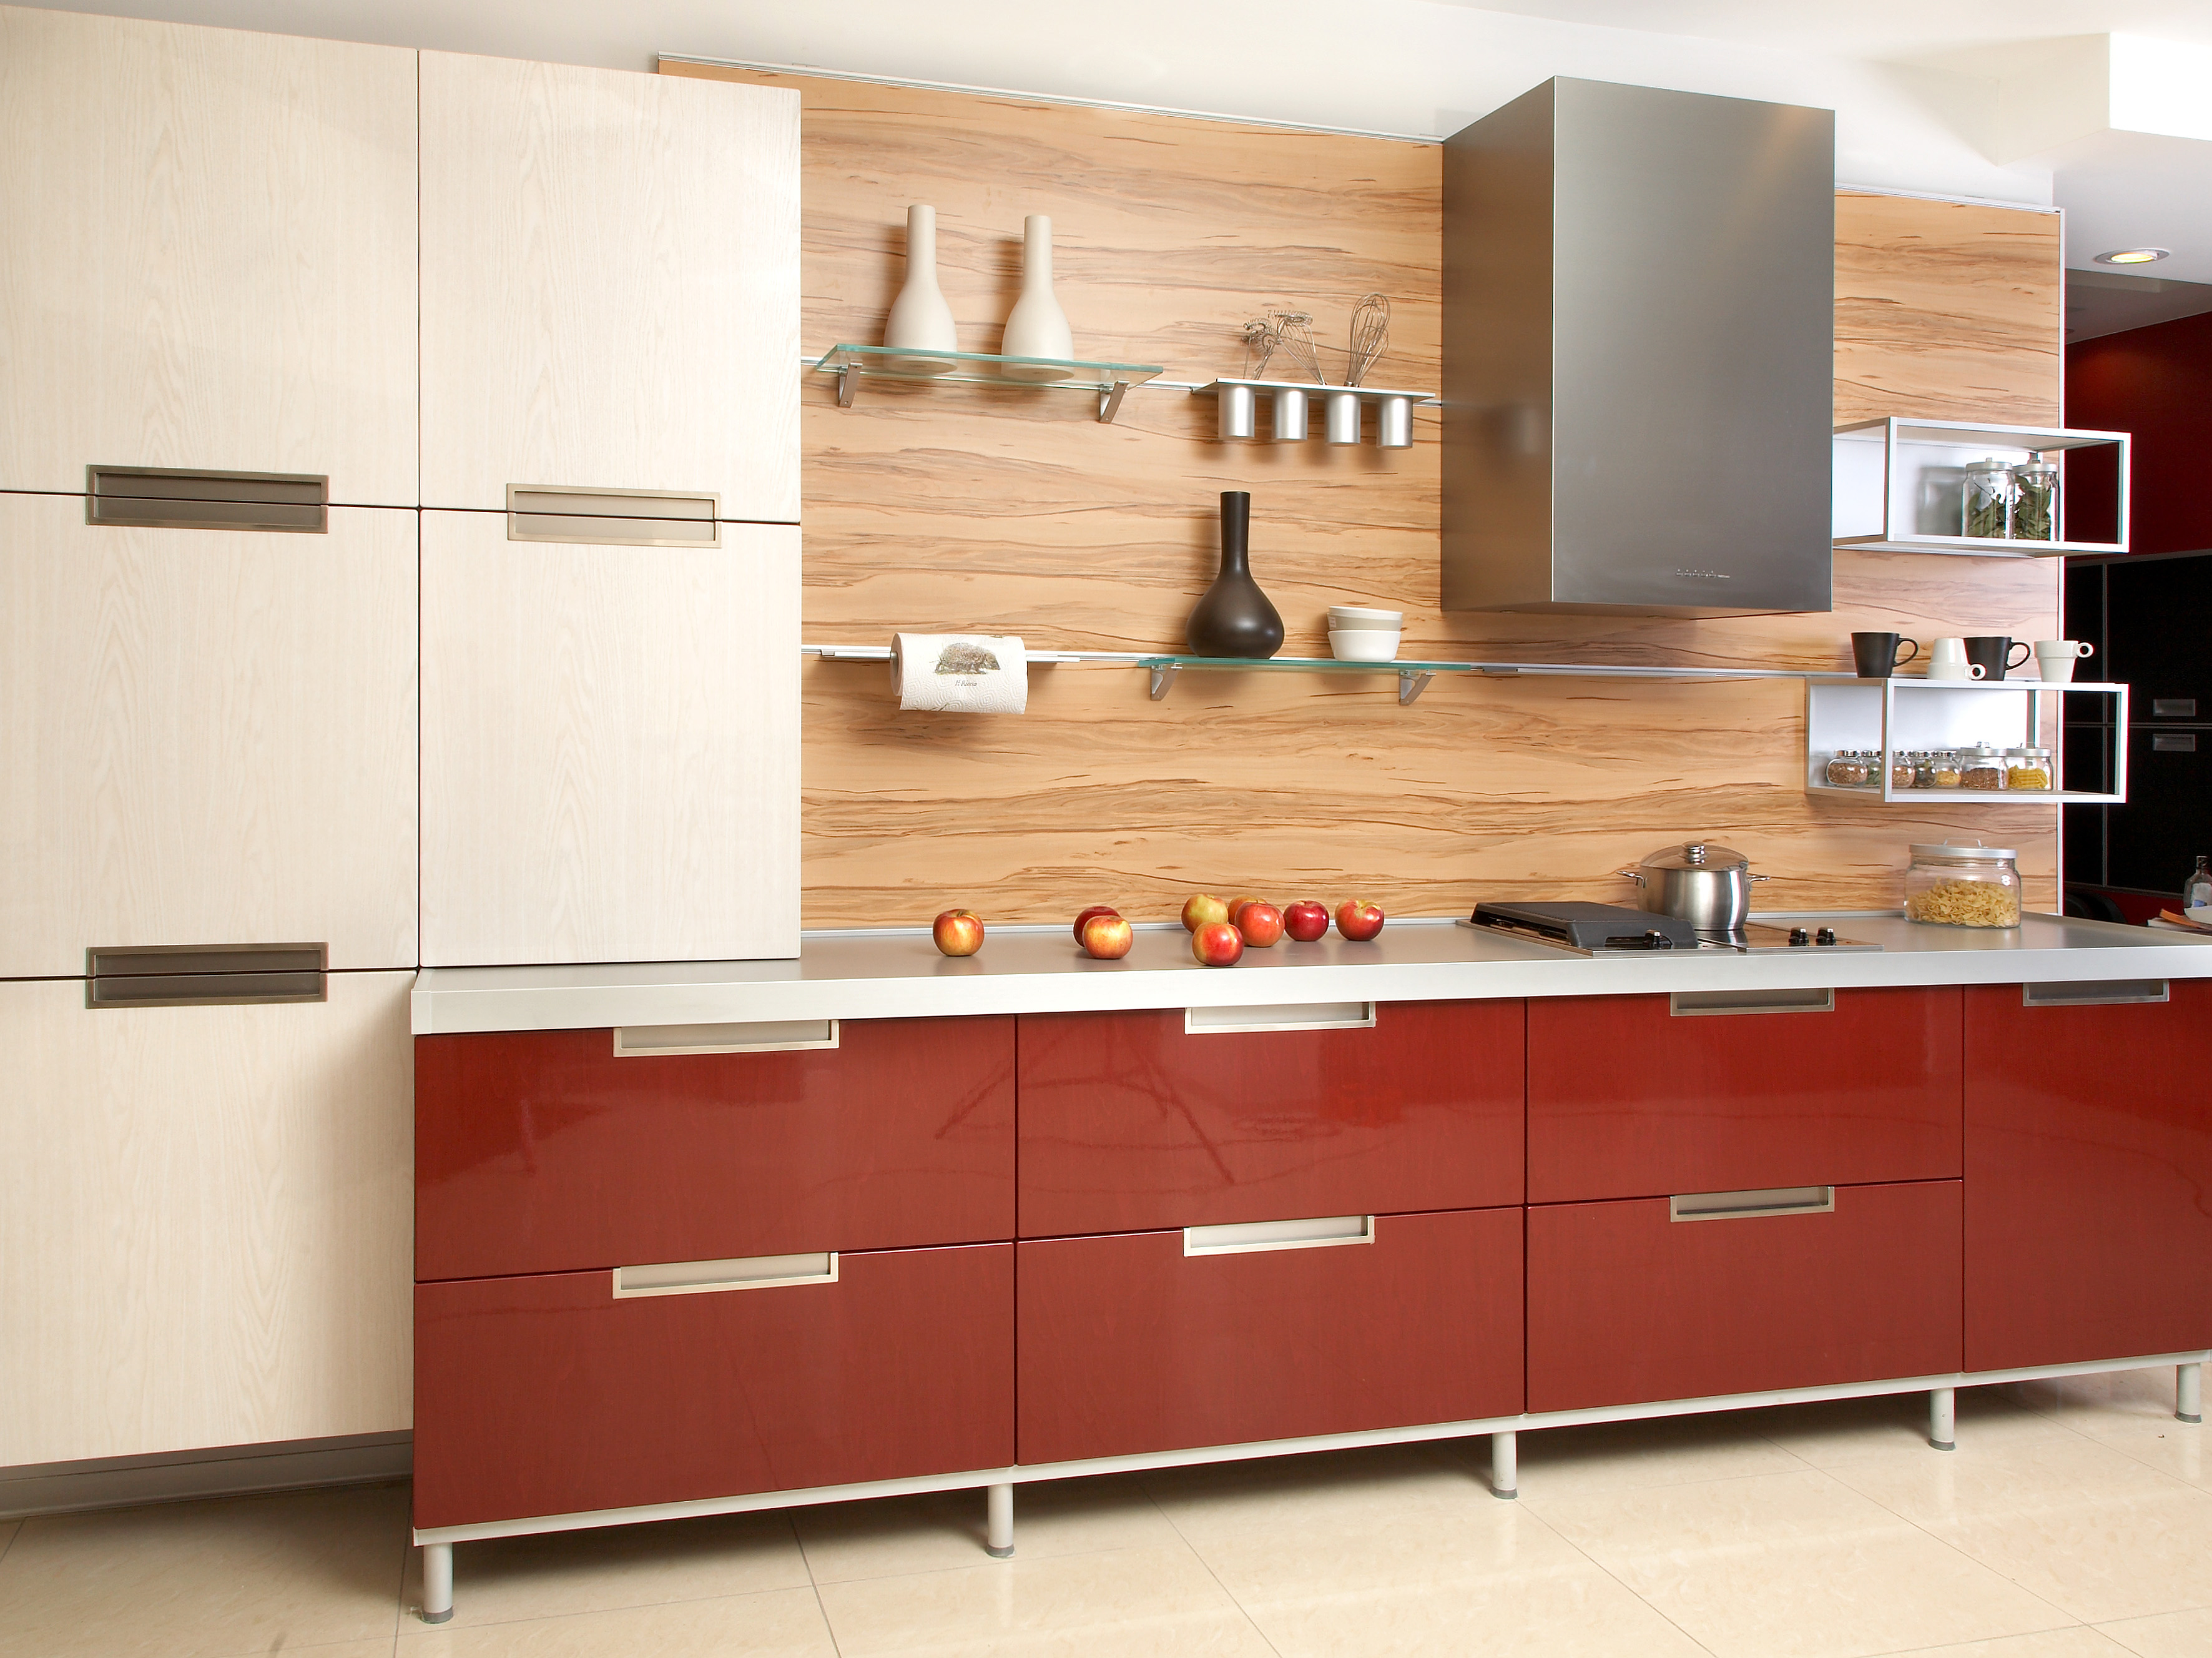 Kitchen_009